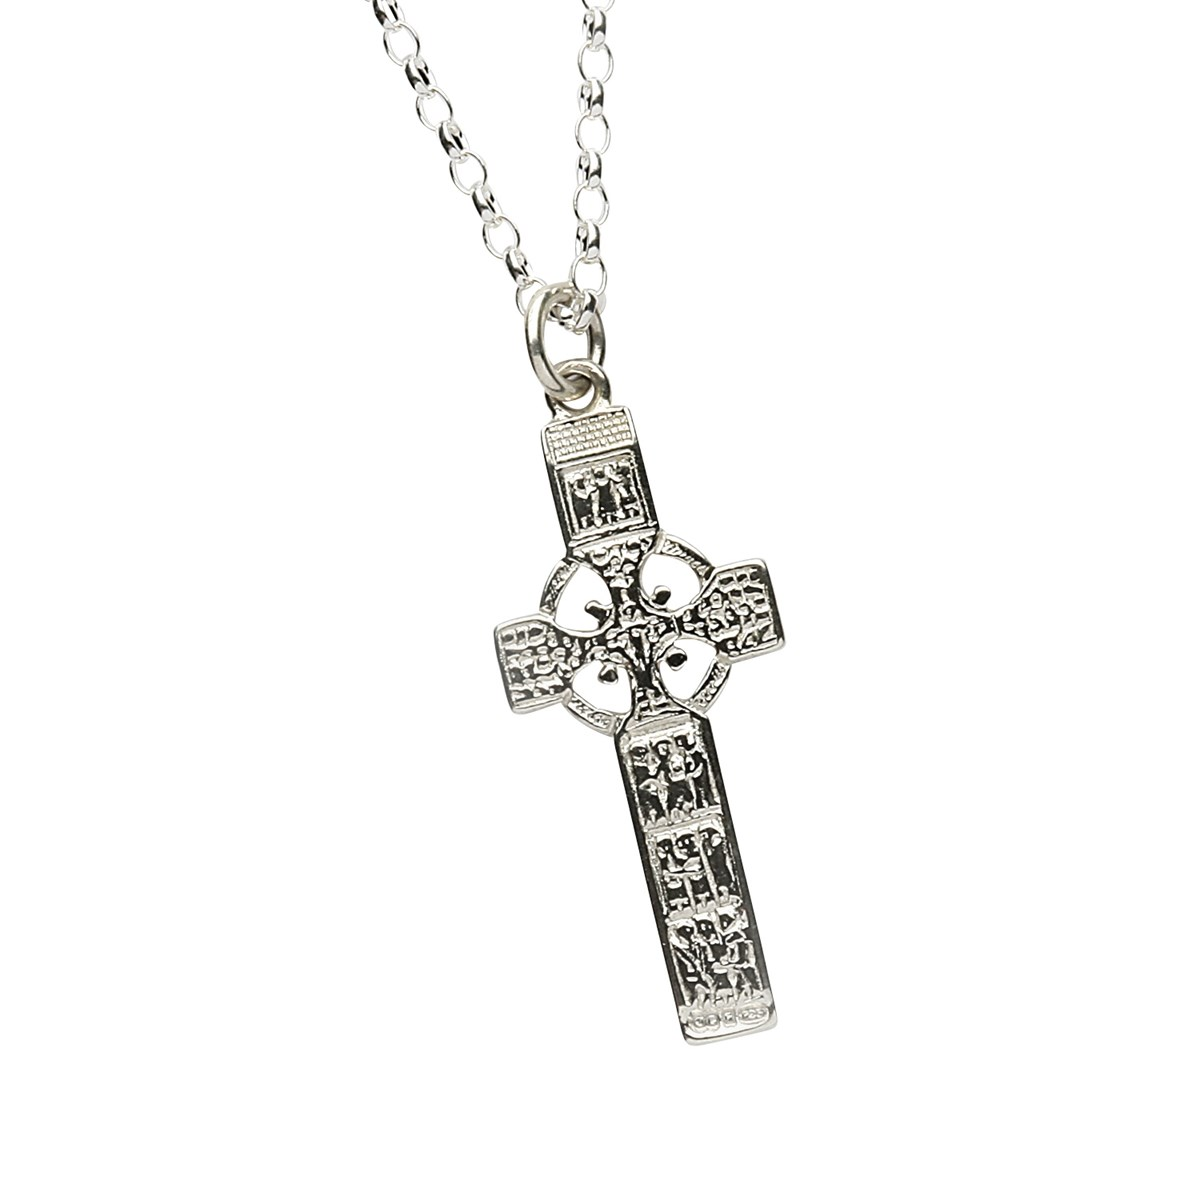 Monasterboice Muiredeach High Cross Small Silver Necklace - Front